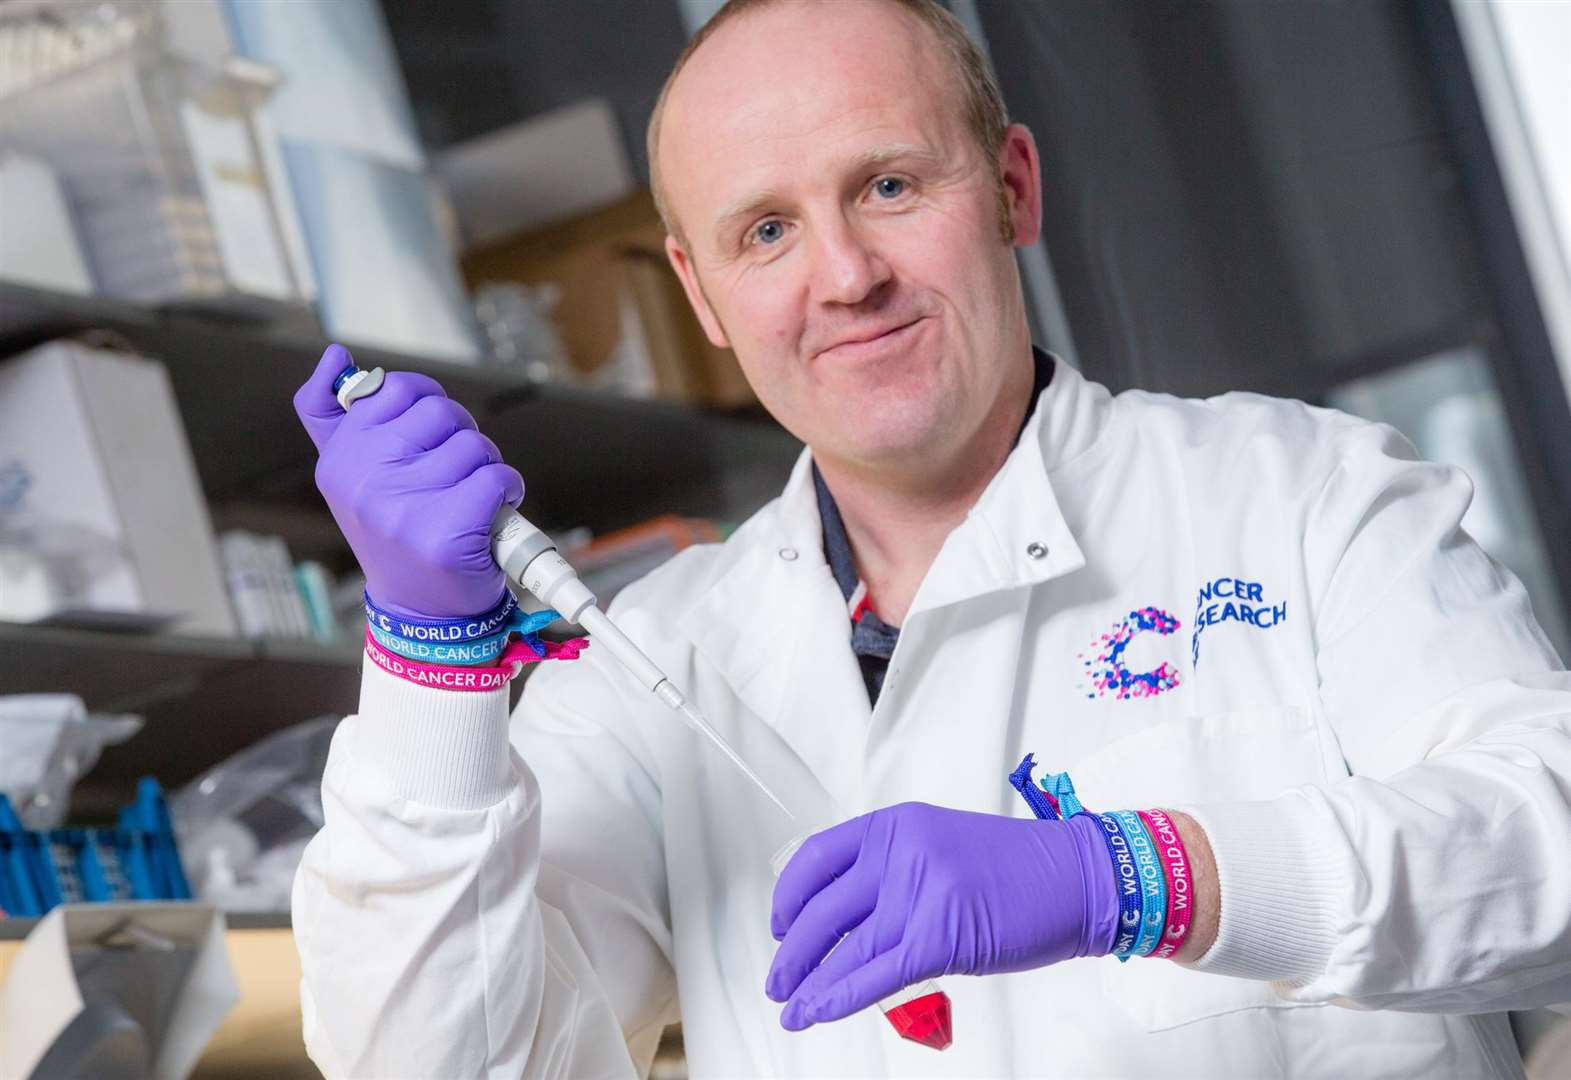 World Cancer Day: Why Cambridge researcher Dr Mike Gill is wearing a Unity Band